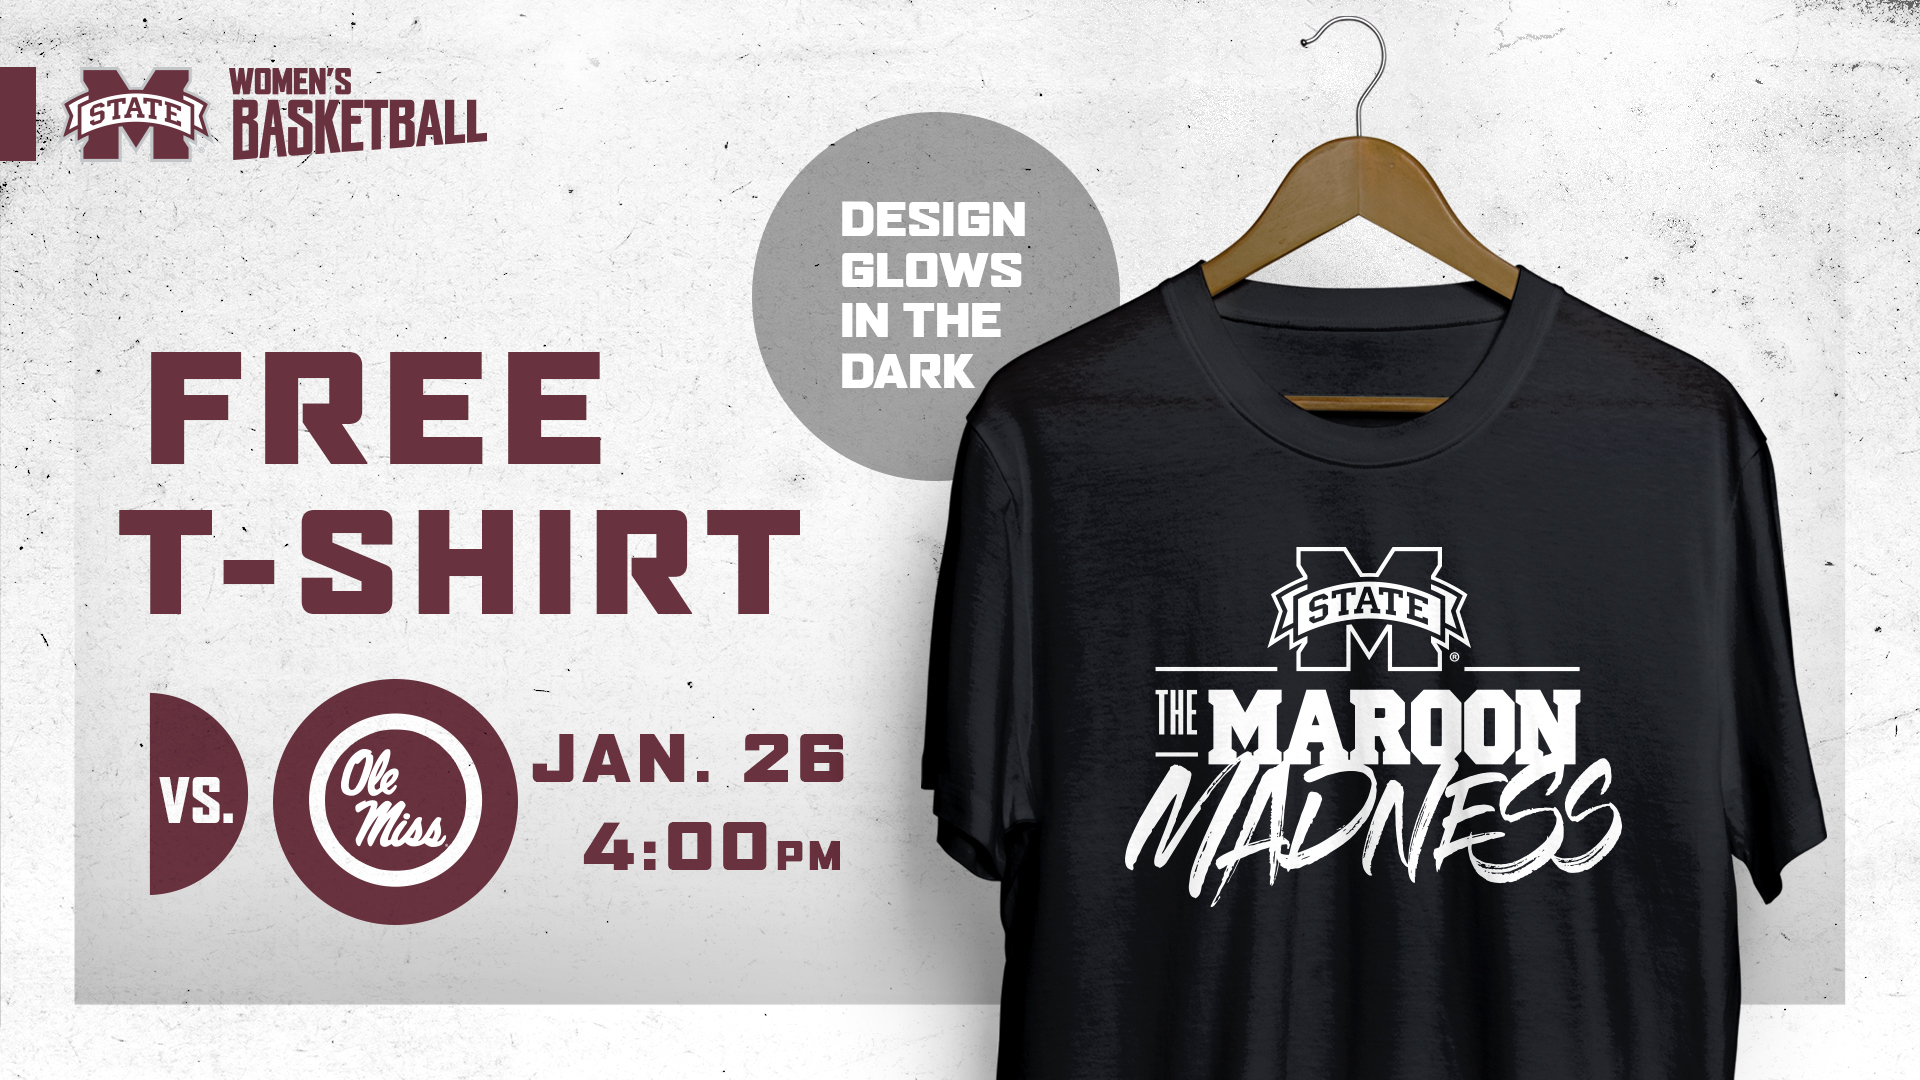 Promotional graphic for MSU women's basketball T-shirt giveaway